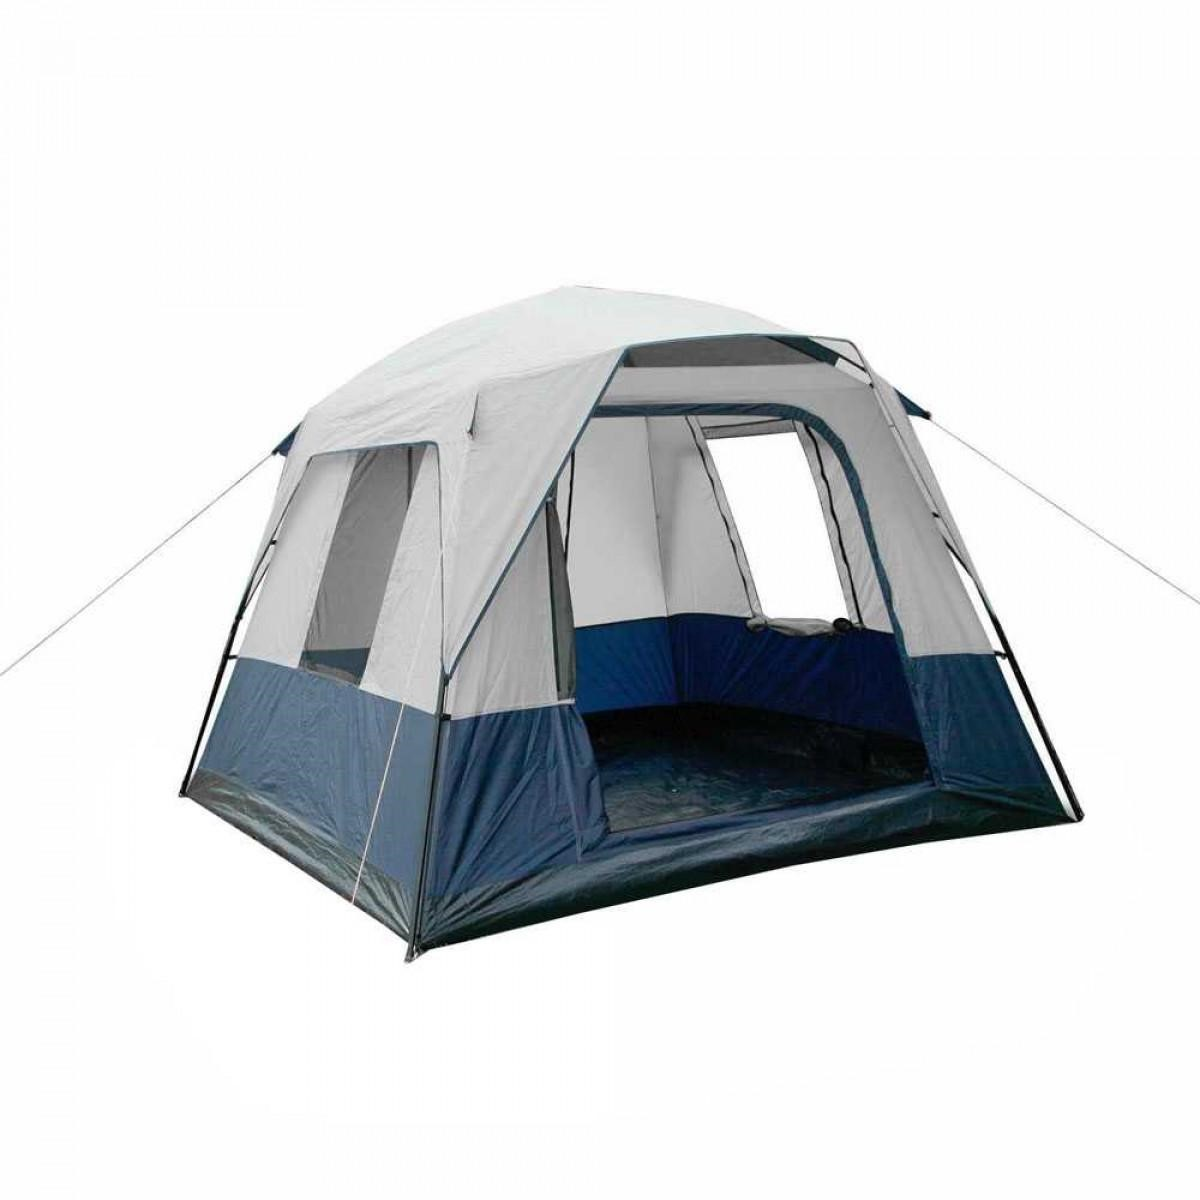 Top 15 Starter Pack Camping Gear _Camping Tent